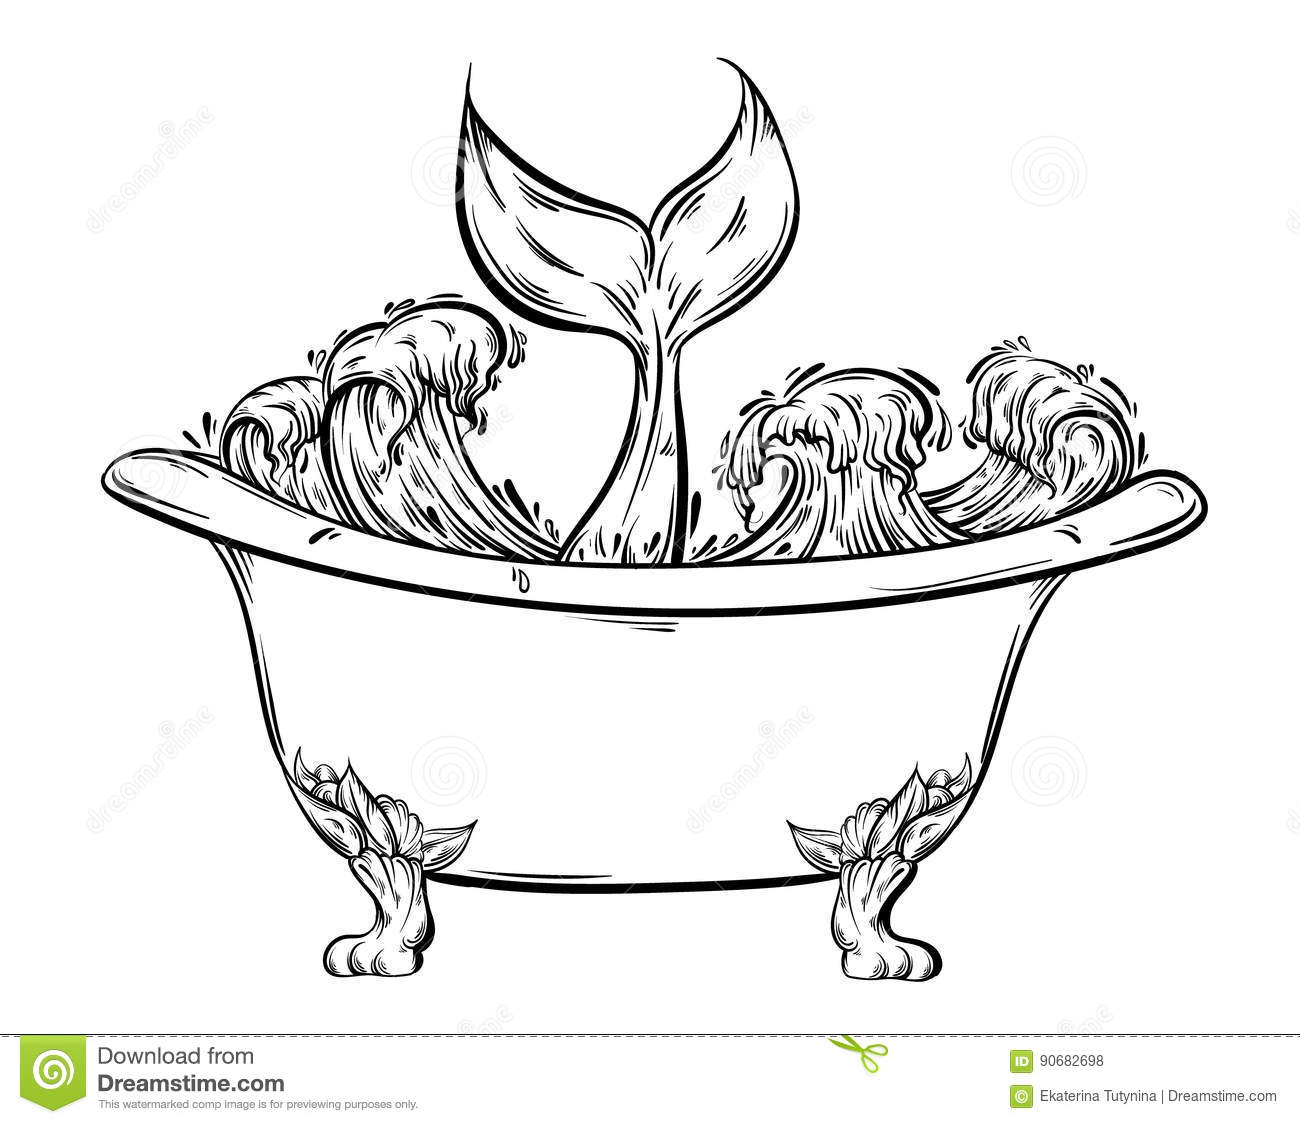 vector hand drawn illustration of bath with ocean waves and tale of